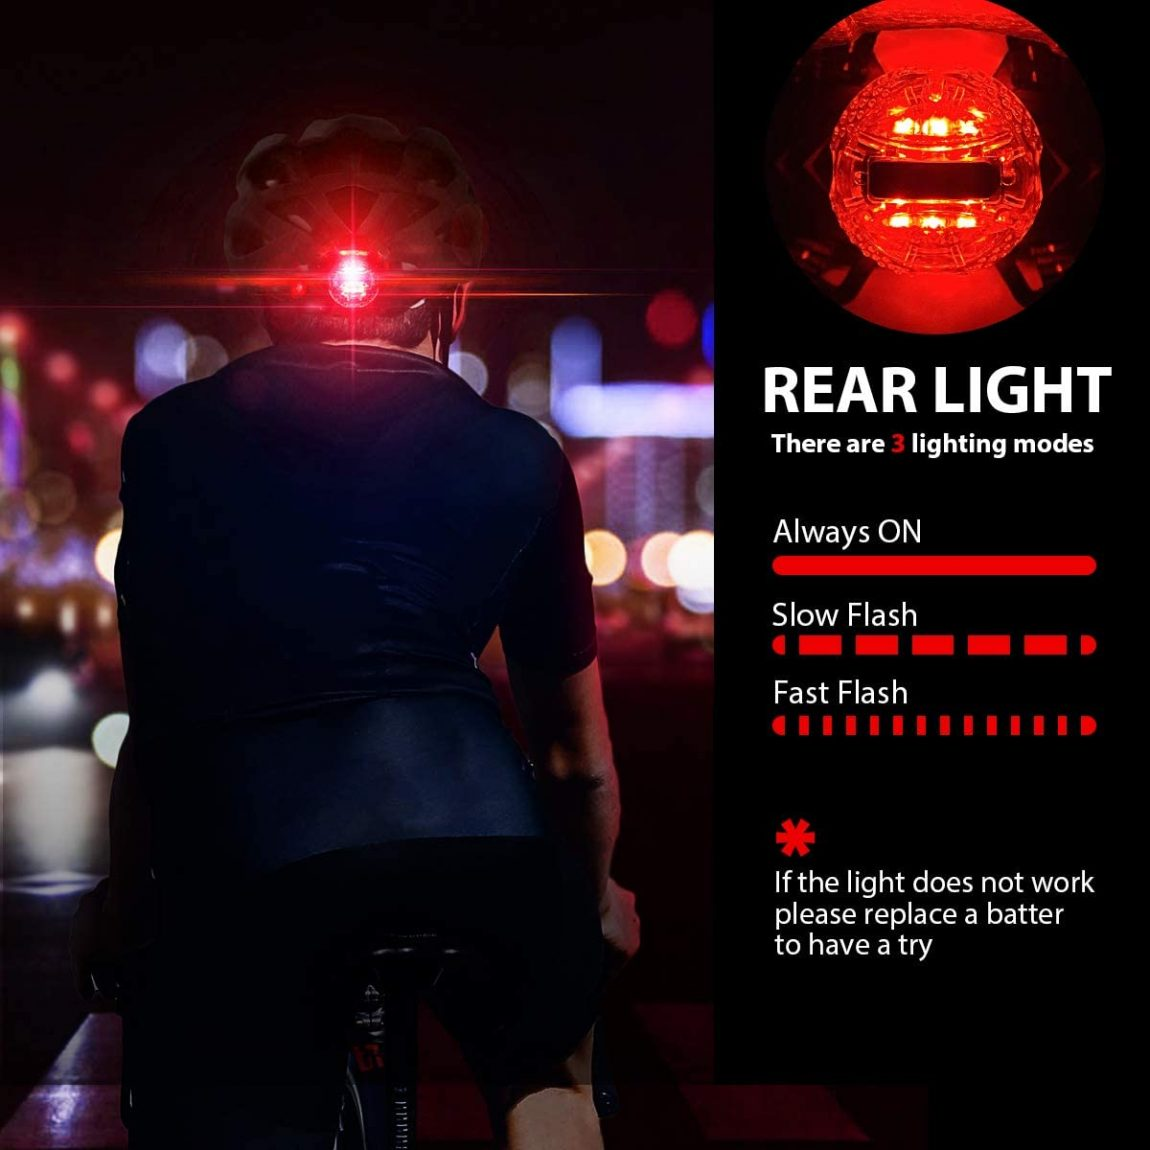 3 lighting modes on rear light: Always on, slow flash, fast flash.